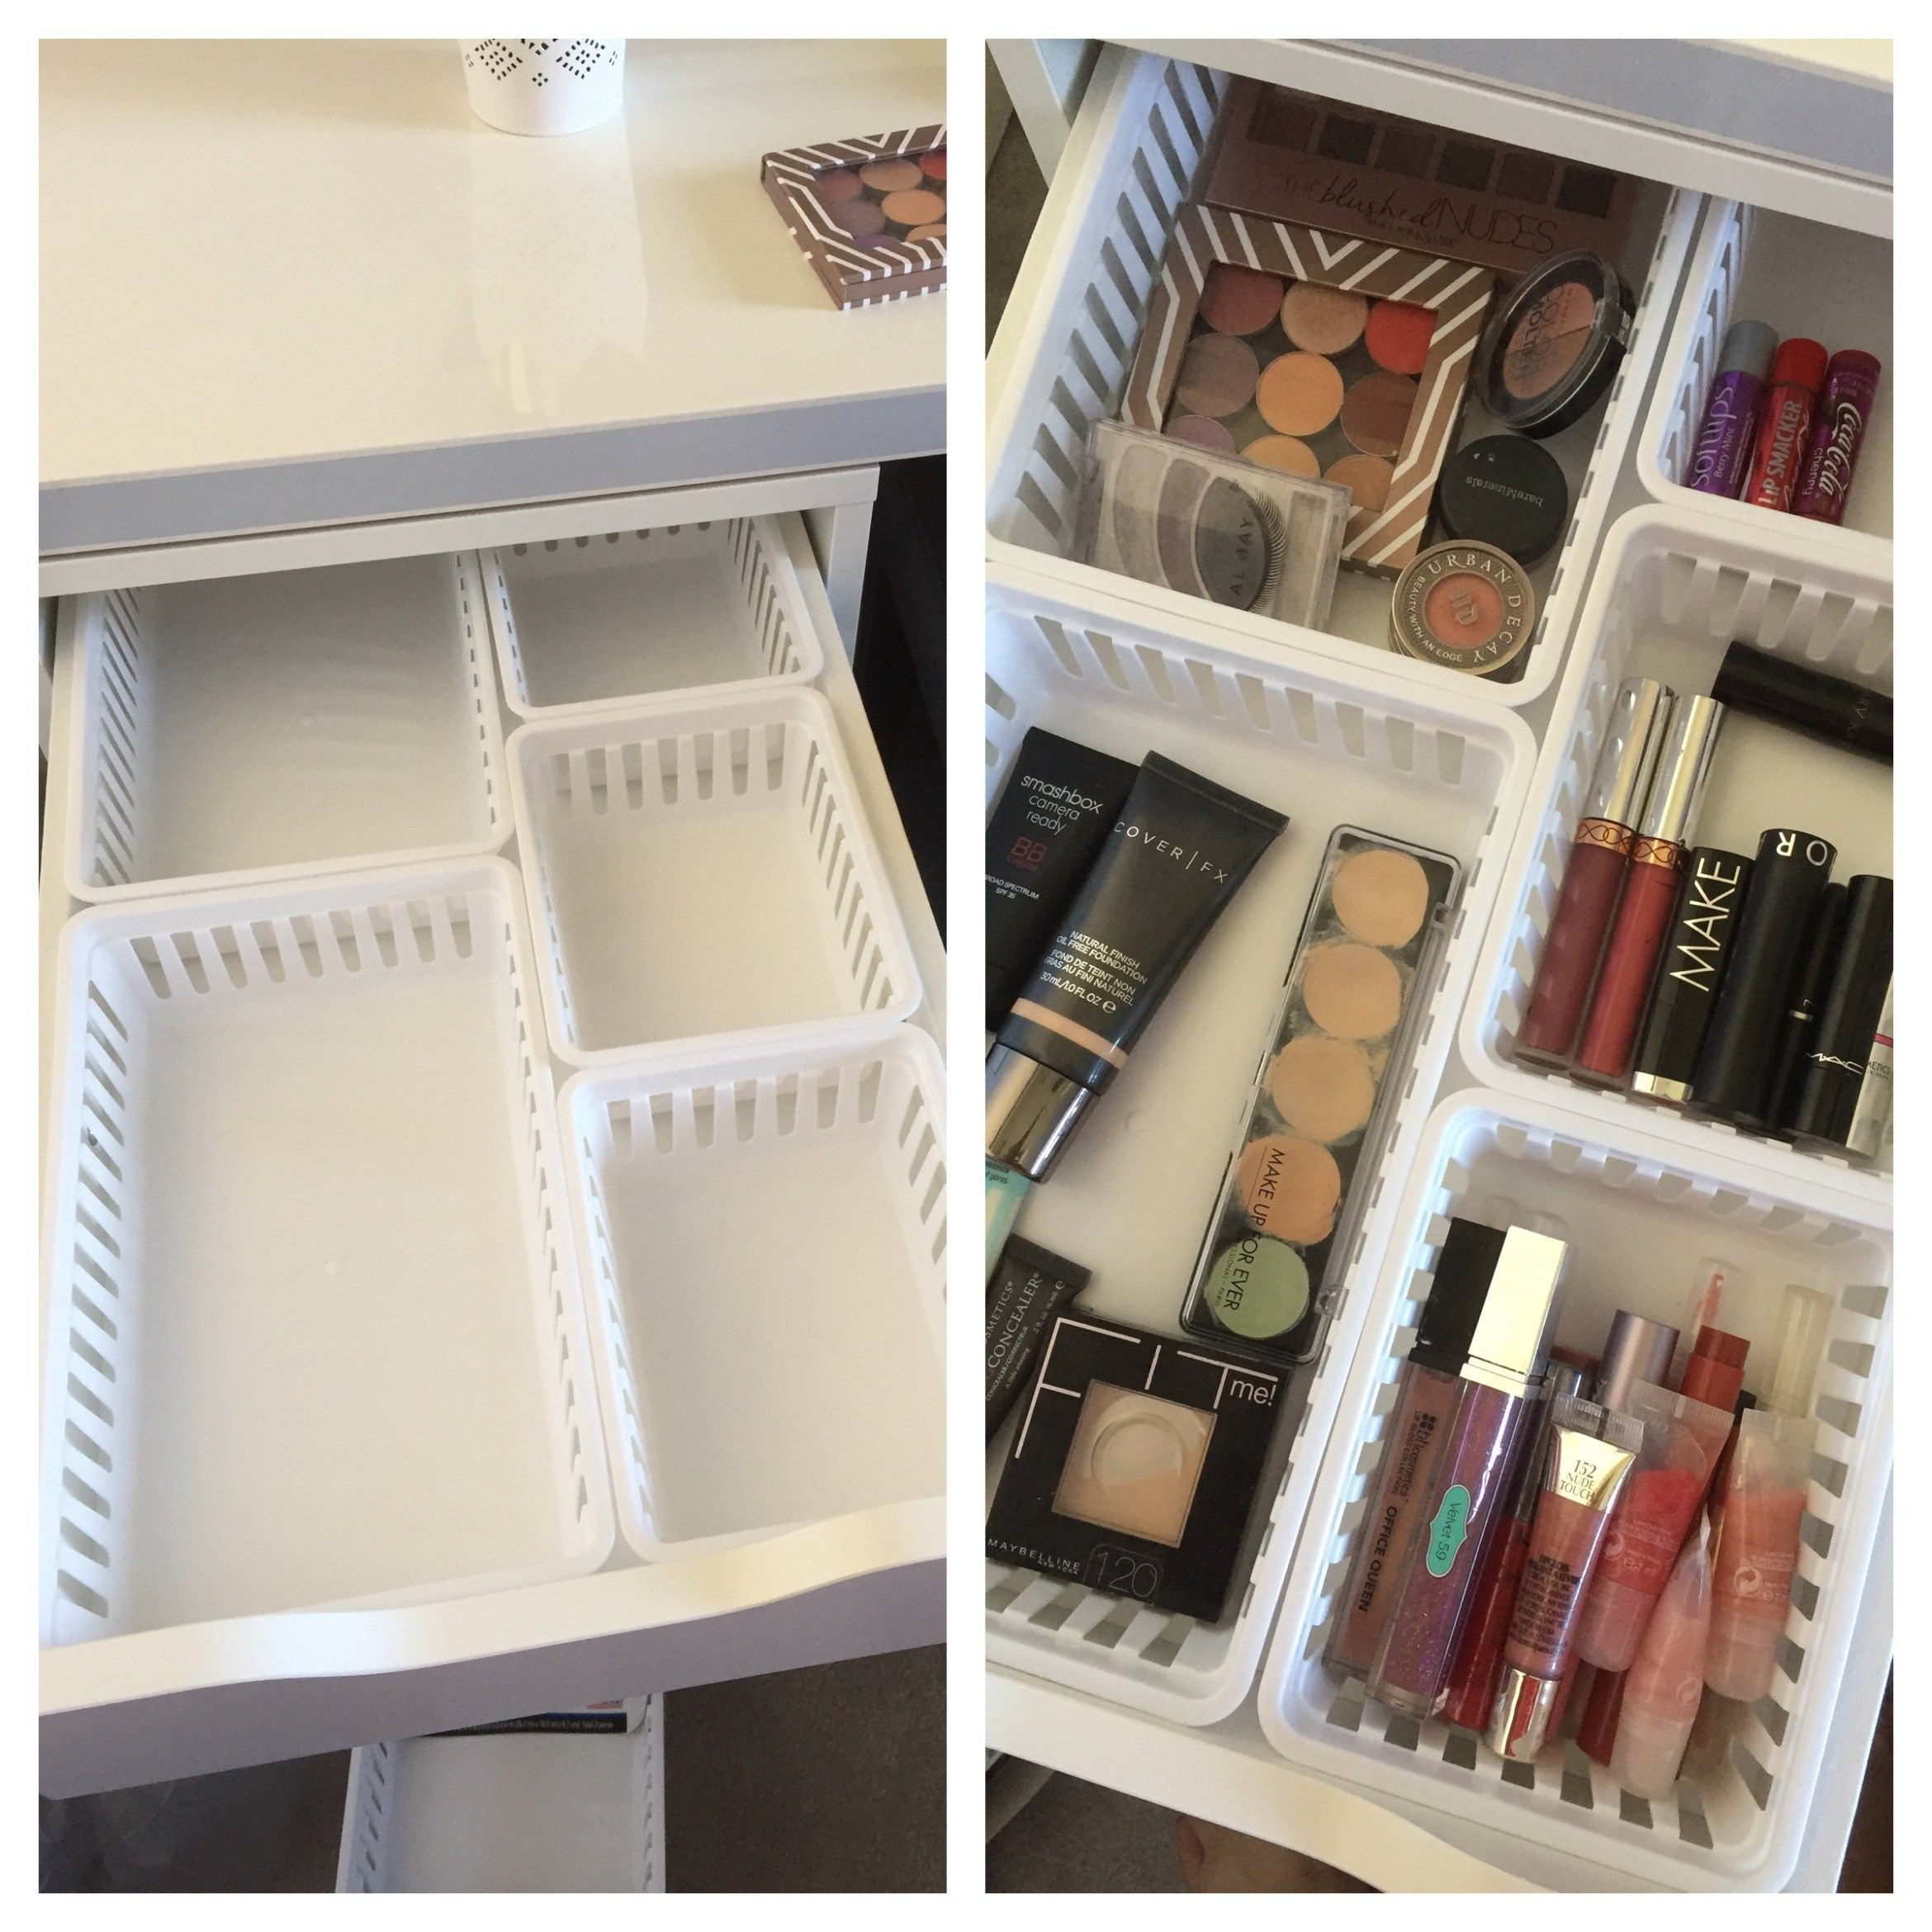 Best ideas about Ikea Storage Ideas . Save or Pin Walmart Makeup Storage Ideas for IKEA Alex Drawers Now.